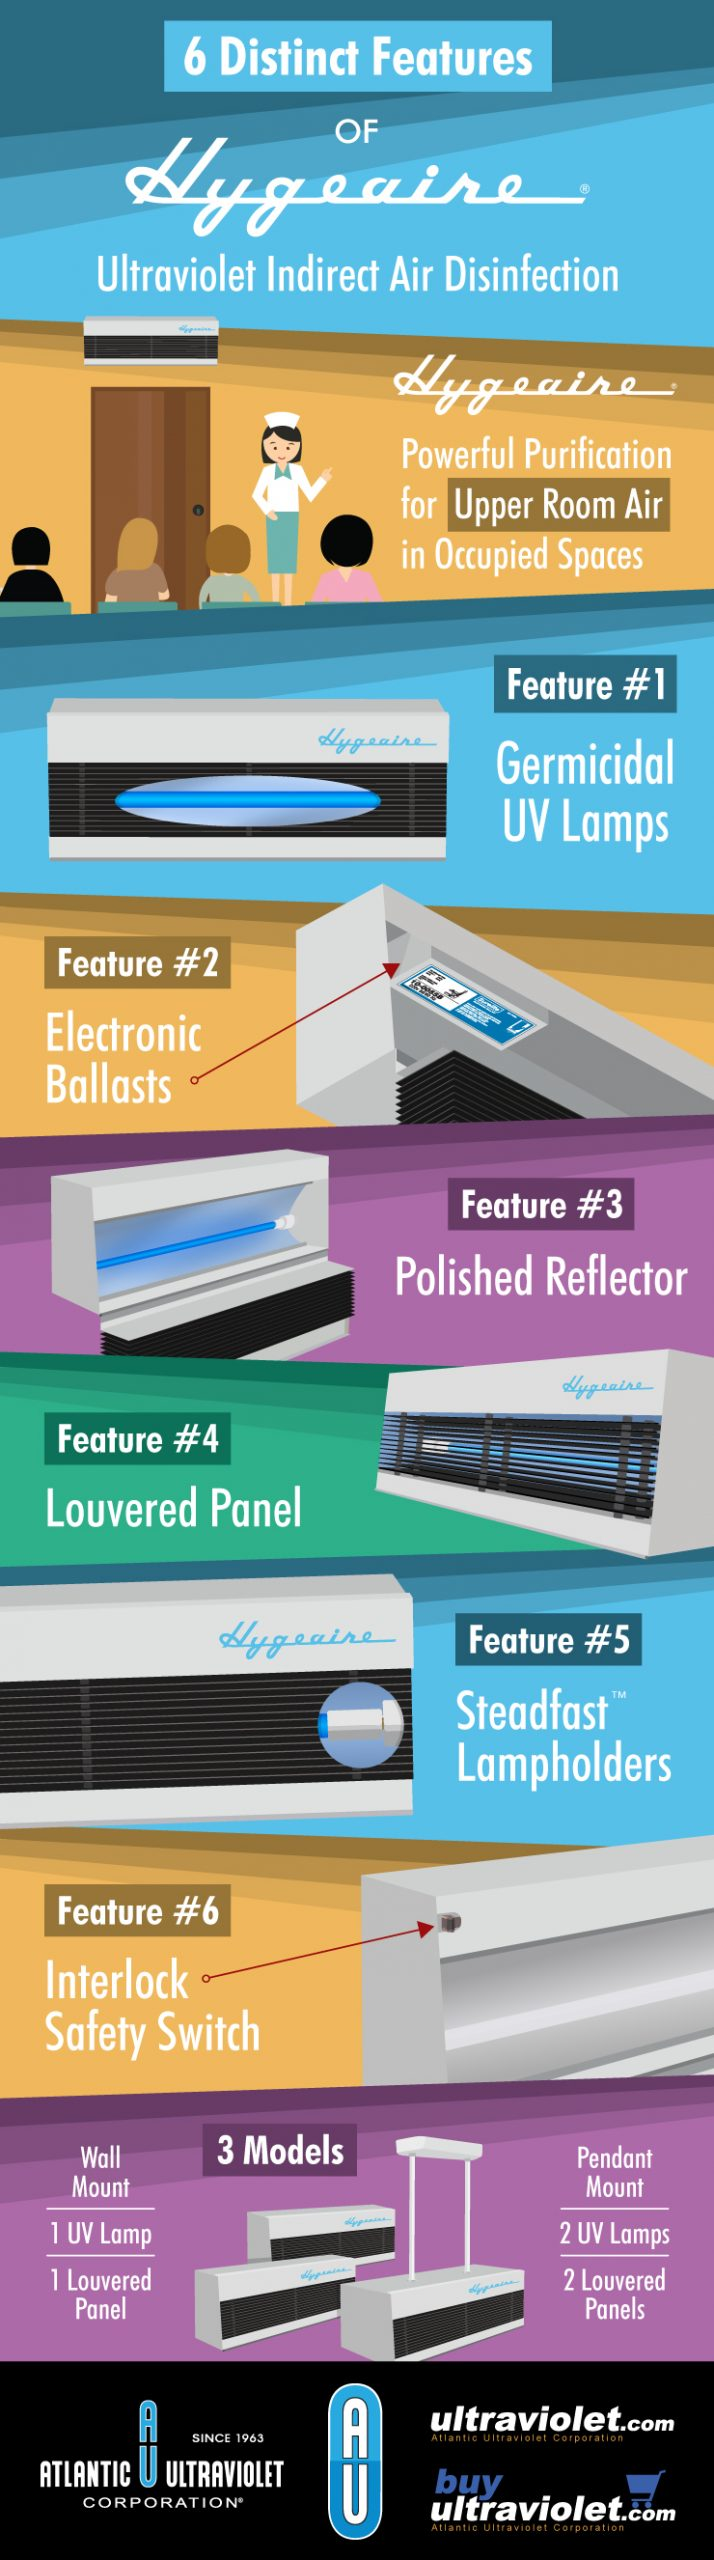 Infographic: 6 Distinct Features of Hygeaire Ultraviolet Indirect Air Disinfection